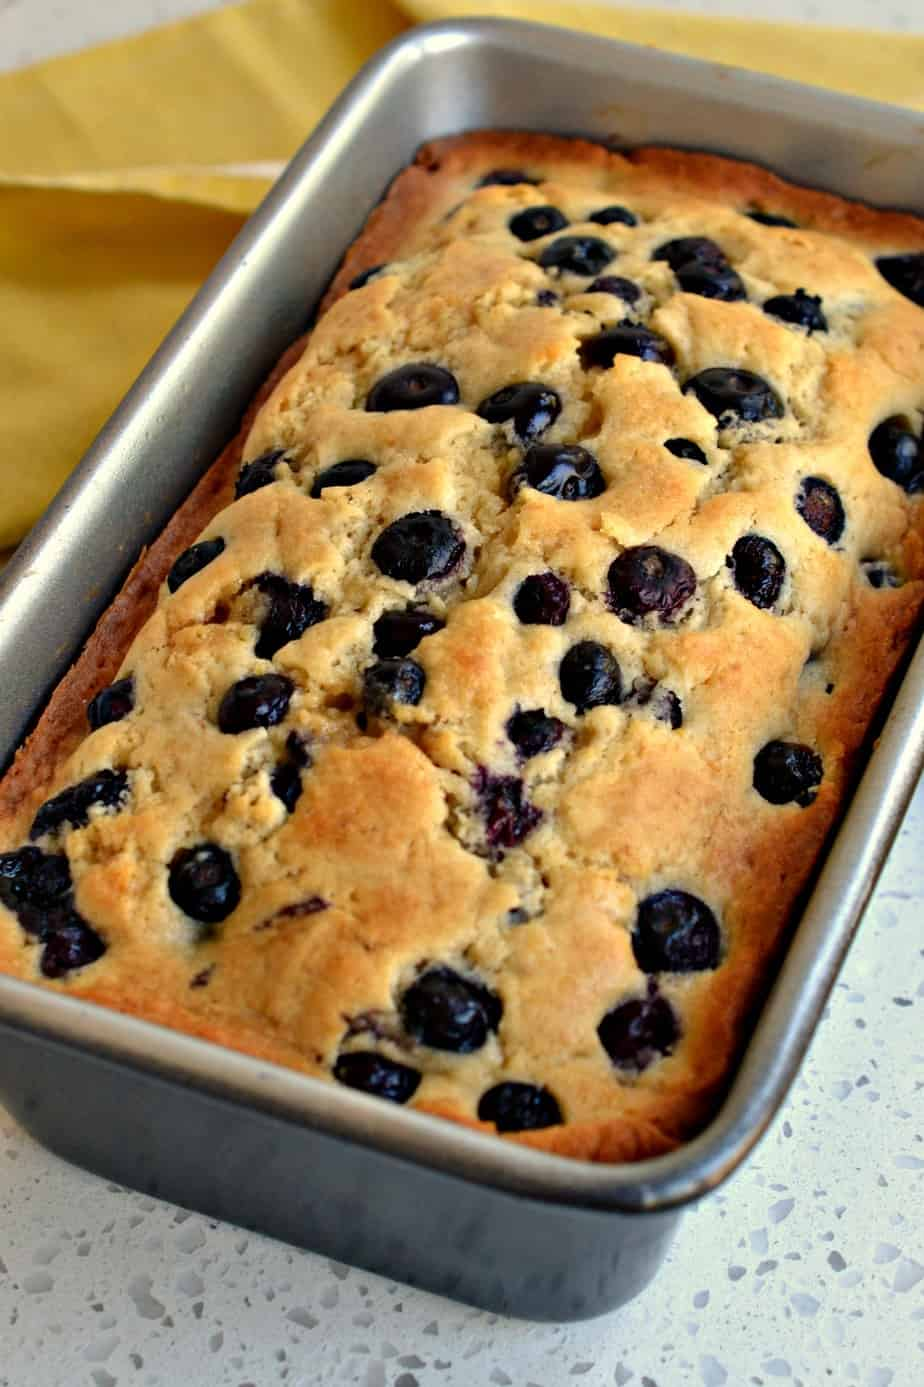 Double this Lemon Blueberry Bread recipe and make an extra loaf for the family later in the week.